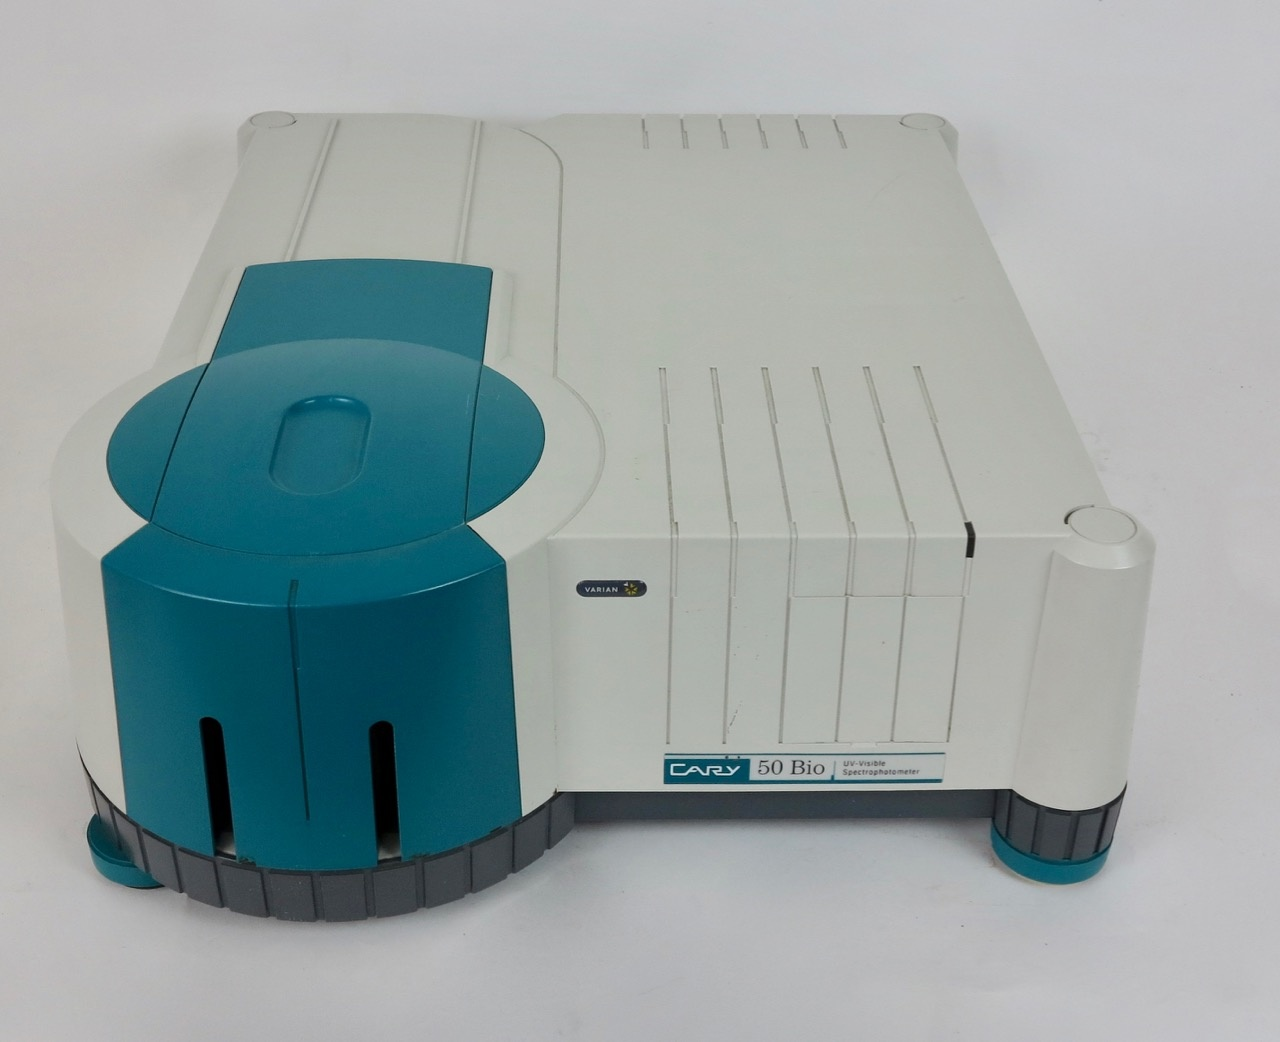 Varian Varian Cary 50 Bio UV-Visible Spectrophotometer